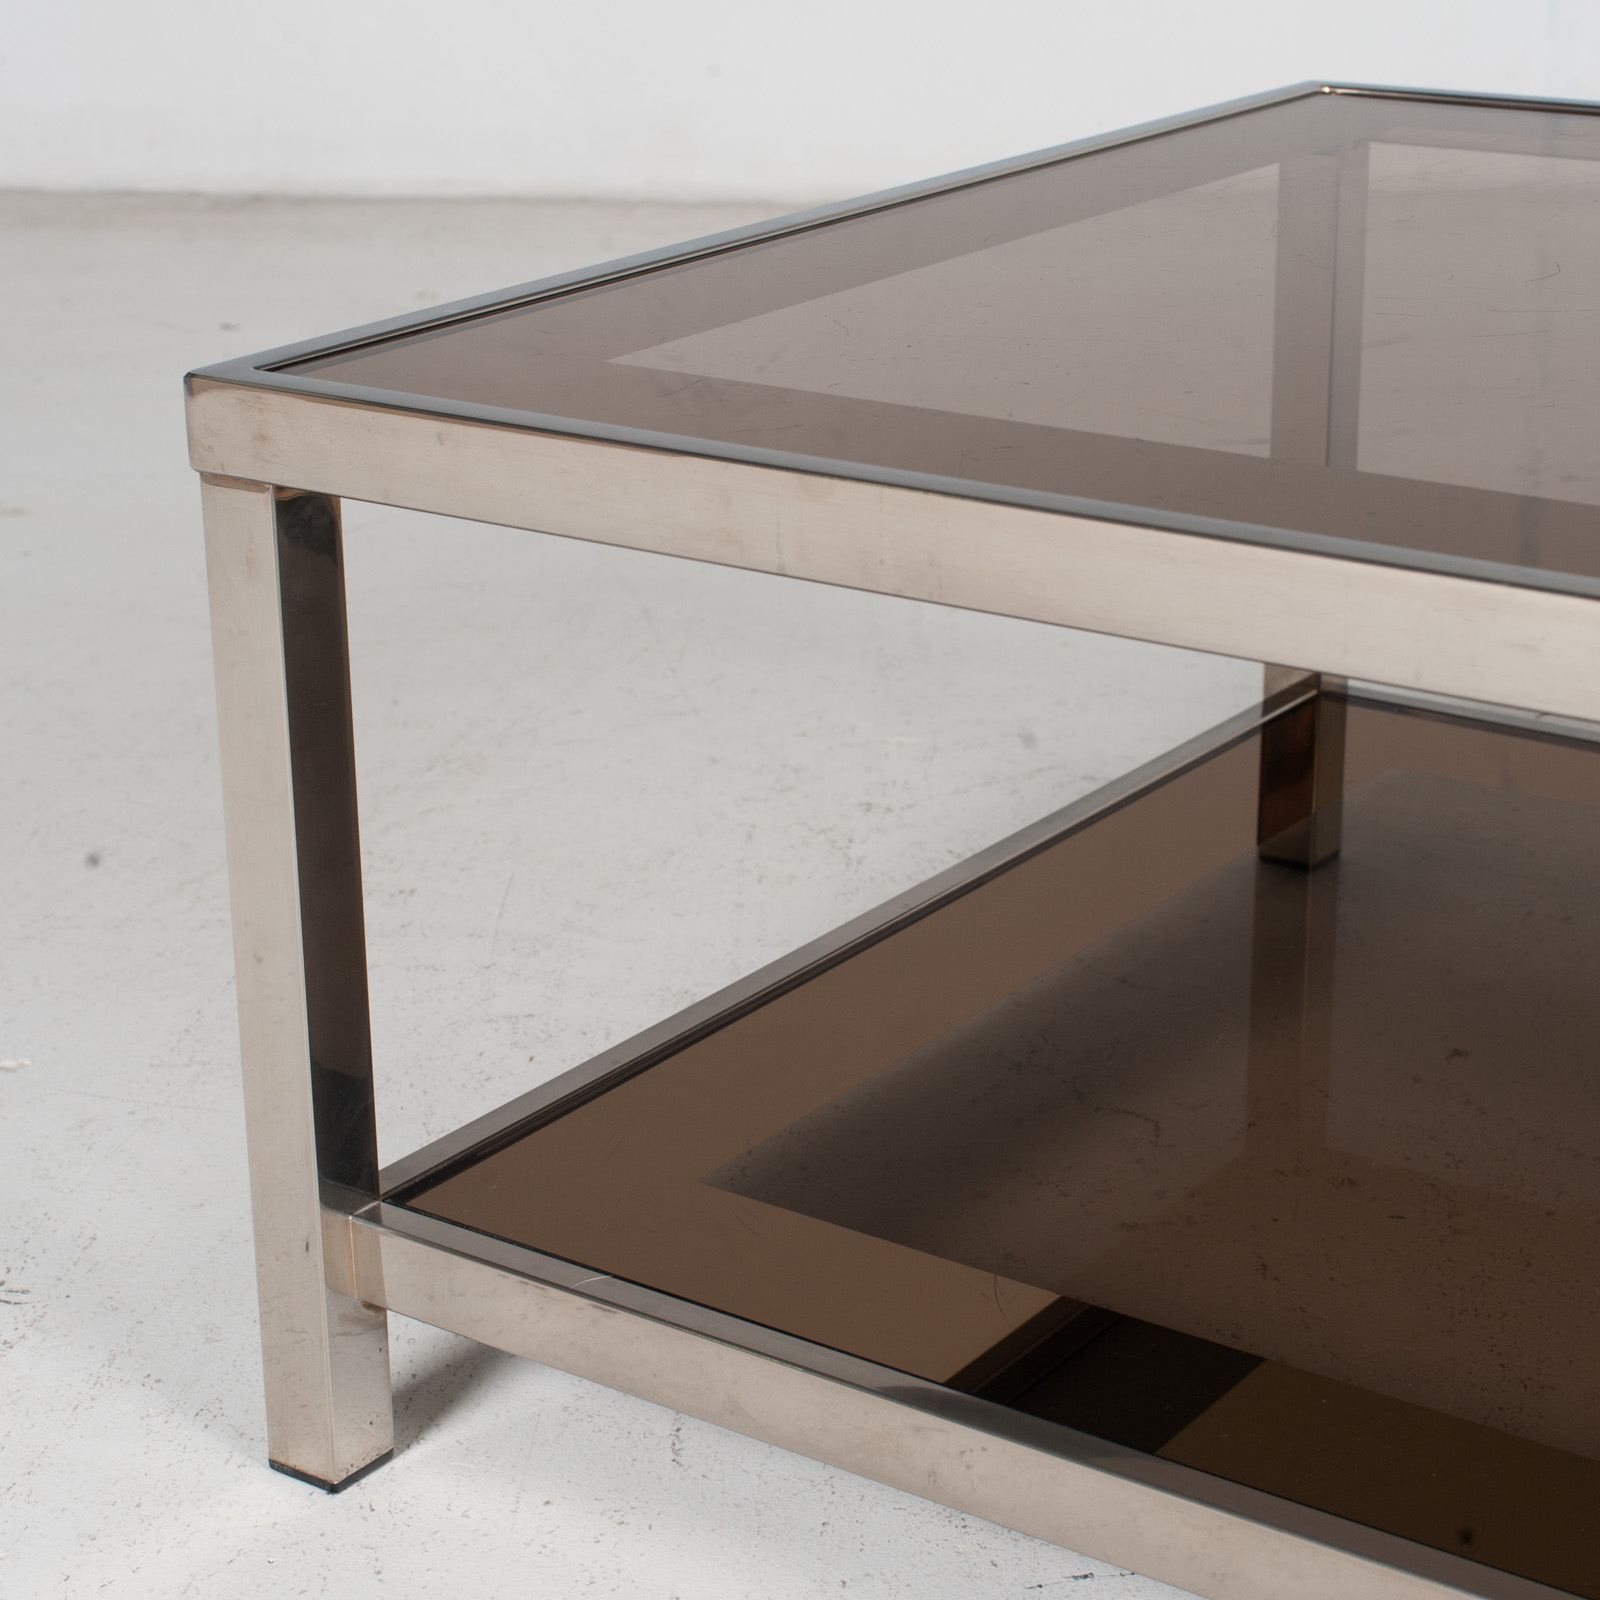 Coffee Table By Belgo Chrome In Smoked Glass, 1970s, Belgium 7